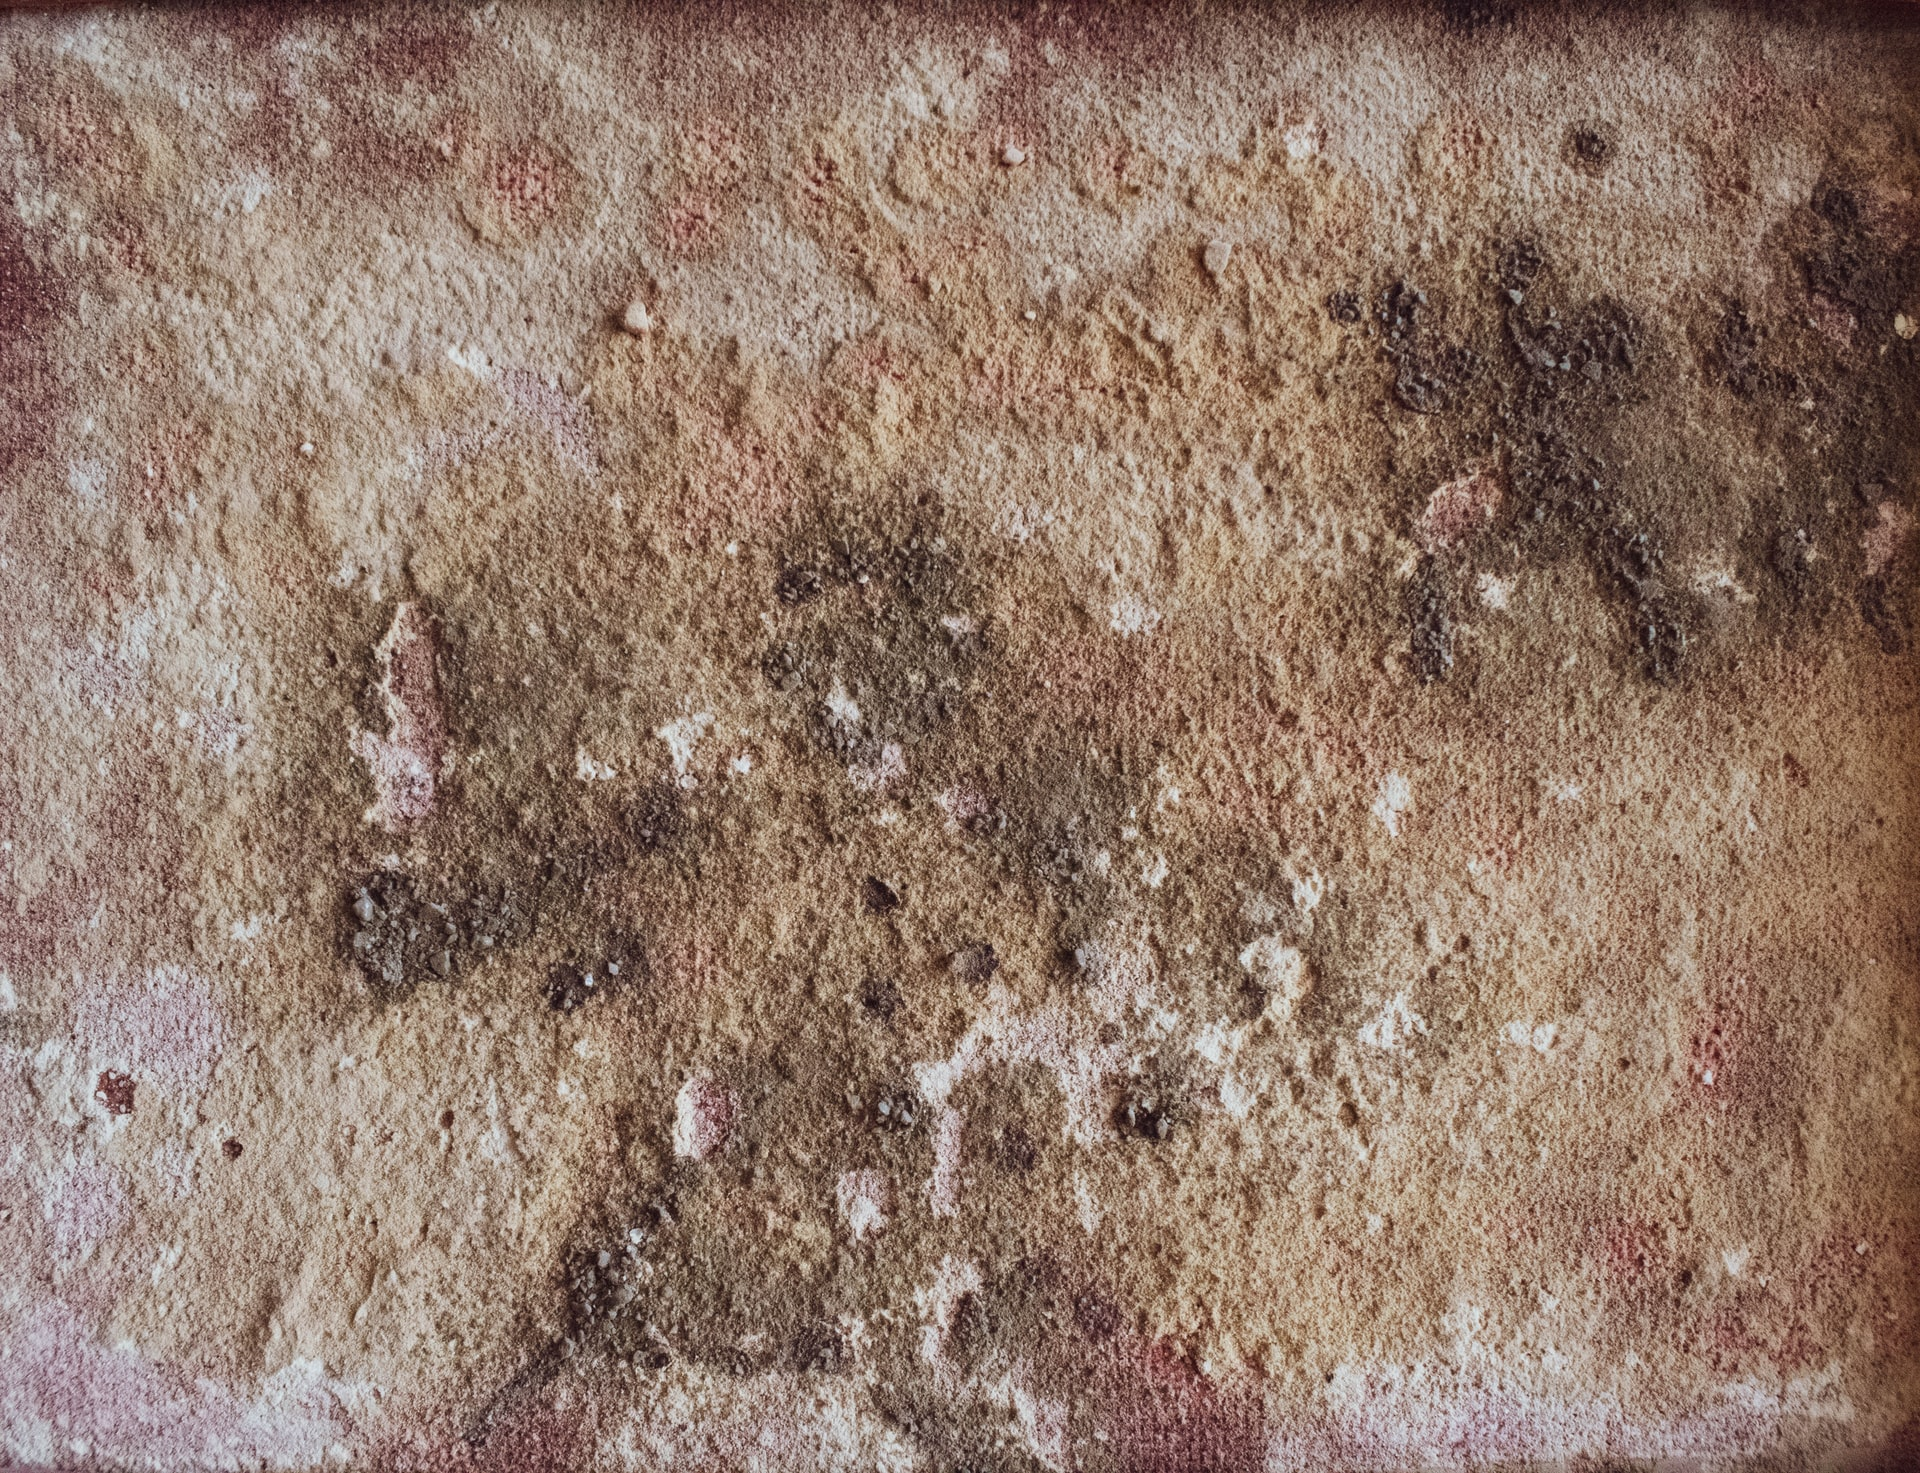 Mold Vs Mildew What Is The Difference